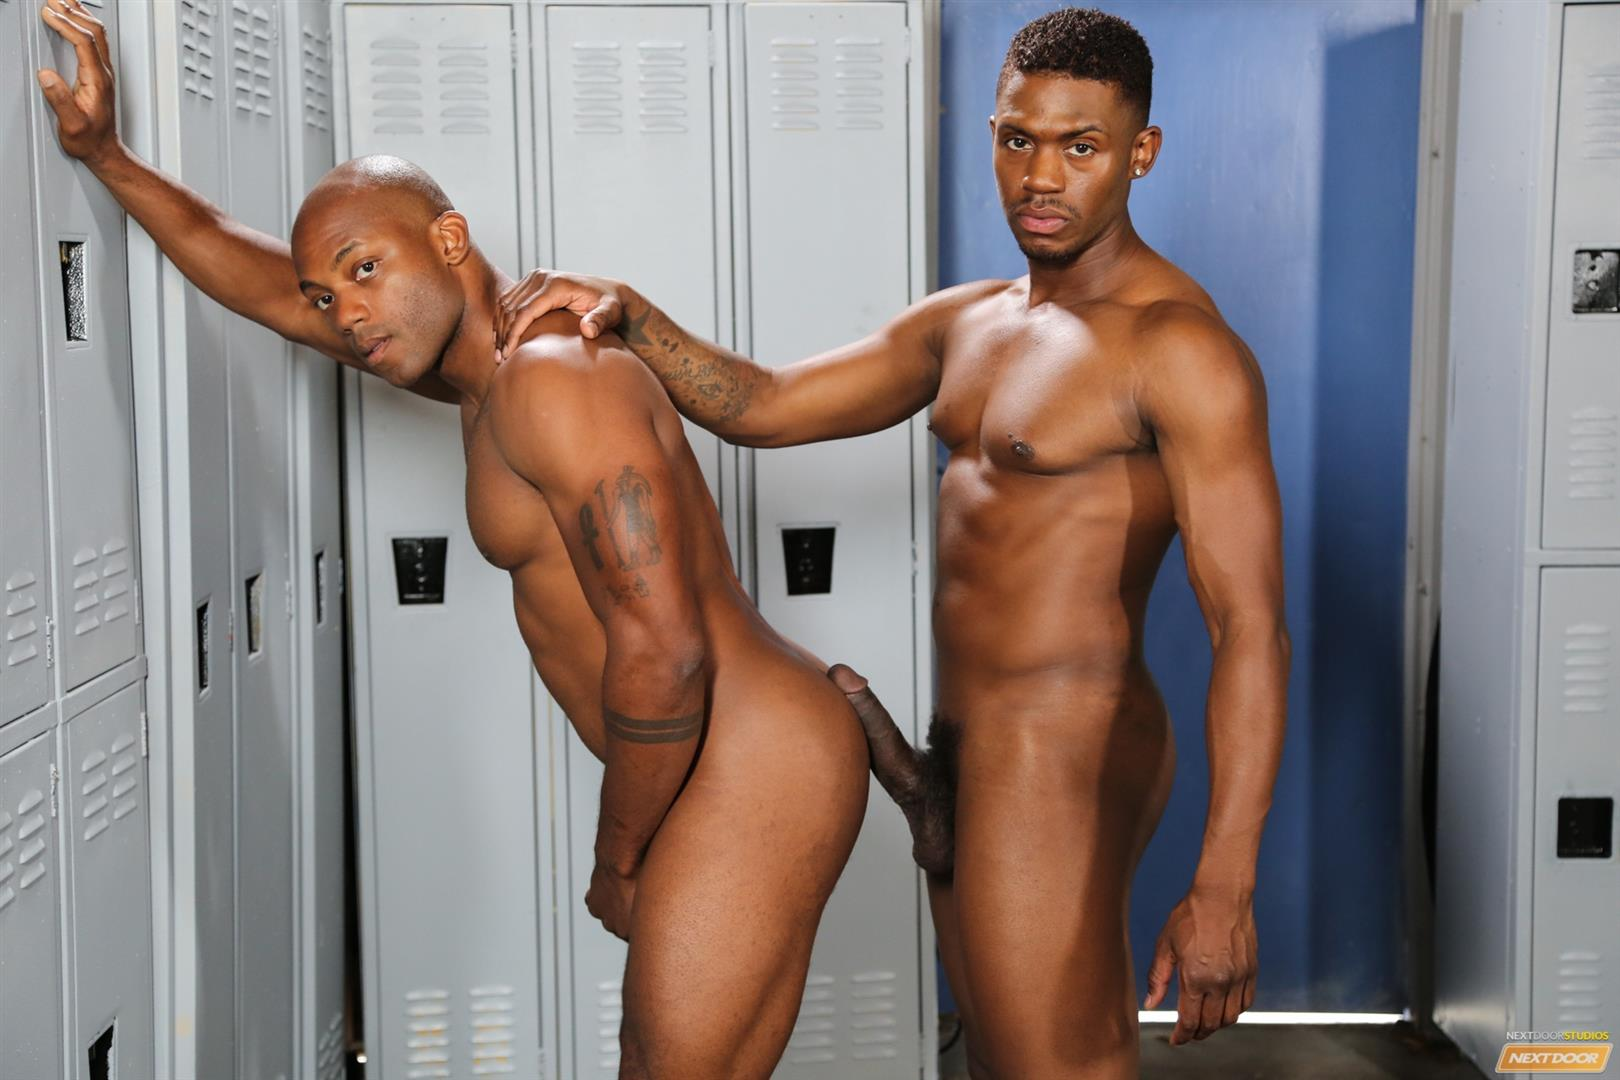 Next Door Ebony Krave Moore and Osiris Blade Big Black Cocks Dicks Fucking Amateur Gay Porn 13 Muscular Black Guys Take Turns Fucking Each Other In The Locker Room